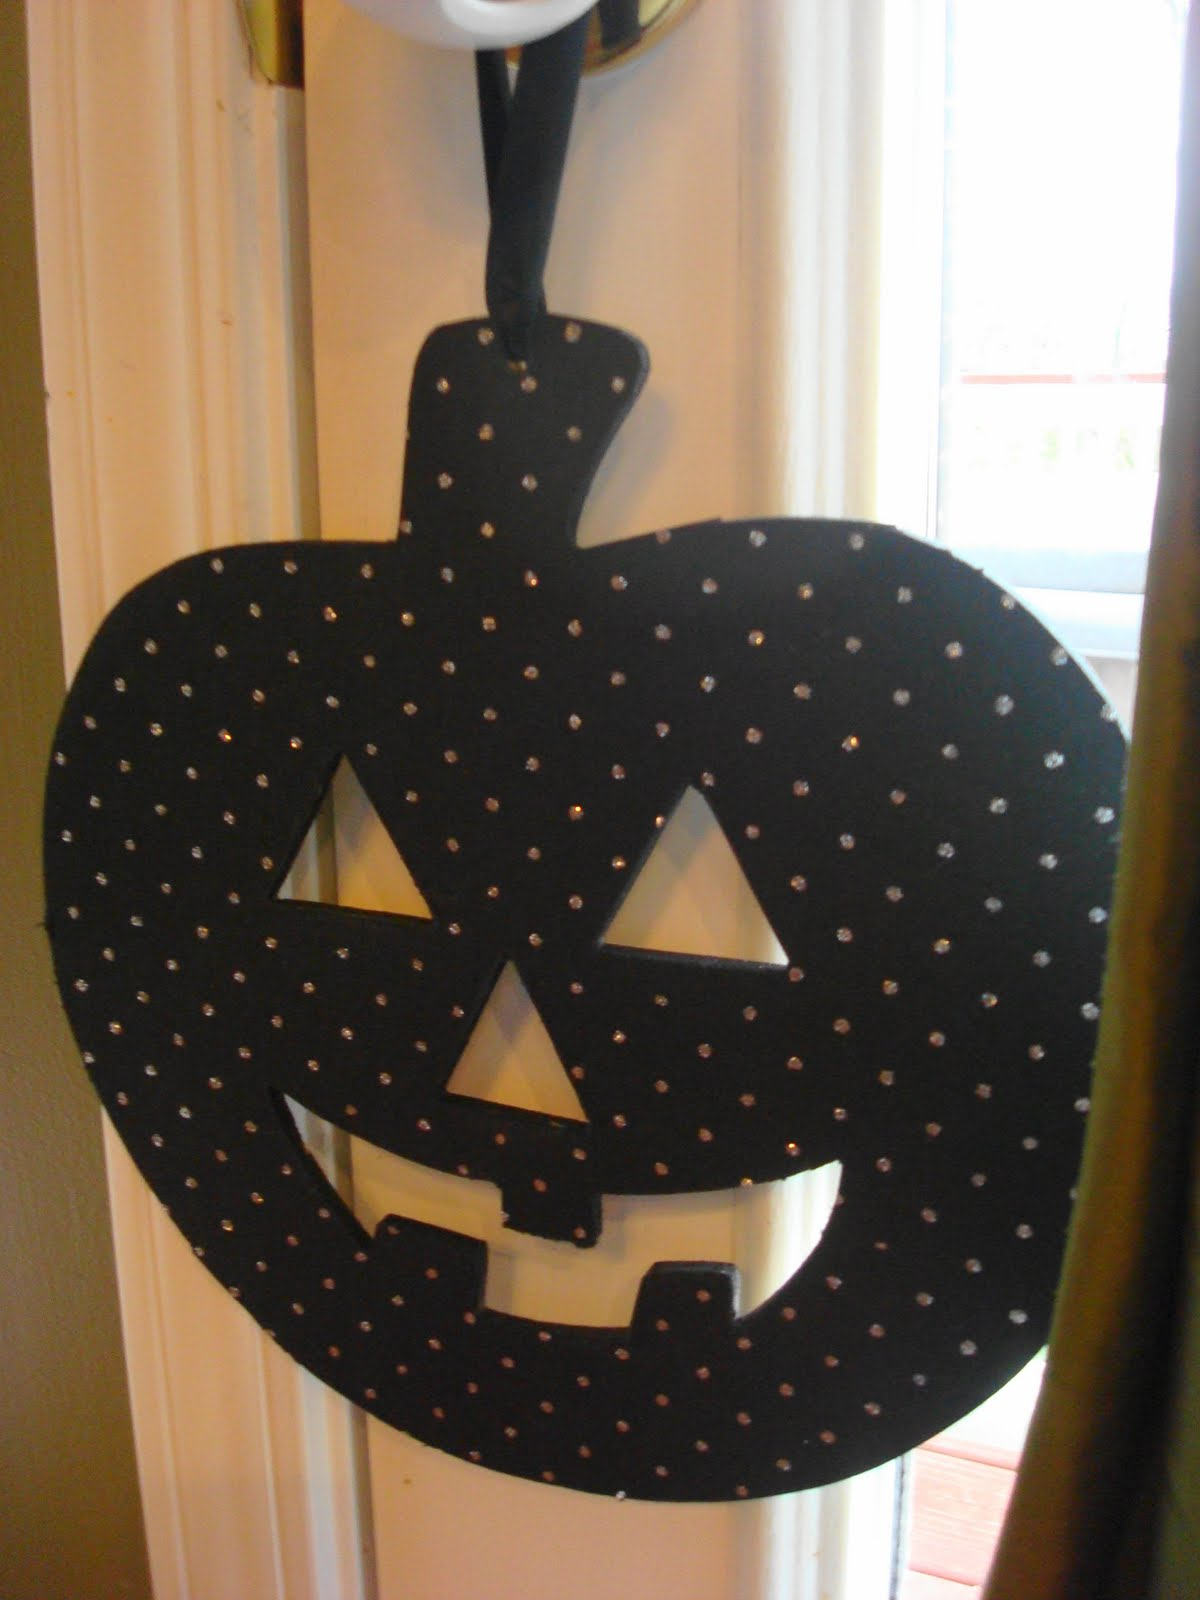 Cover Halloween cut outs with paper